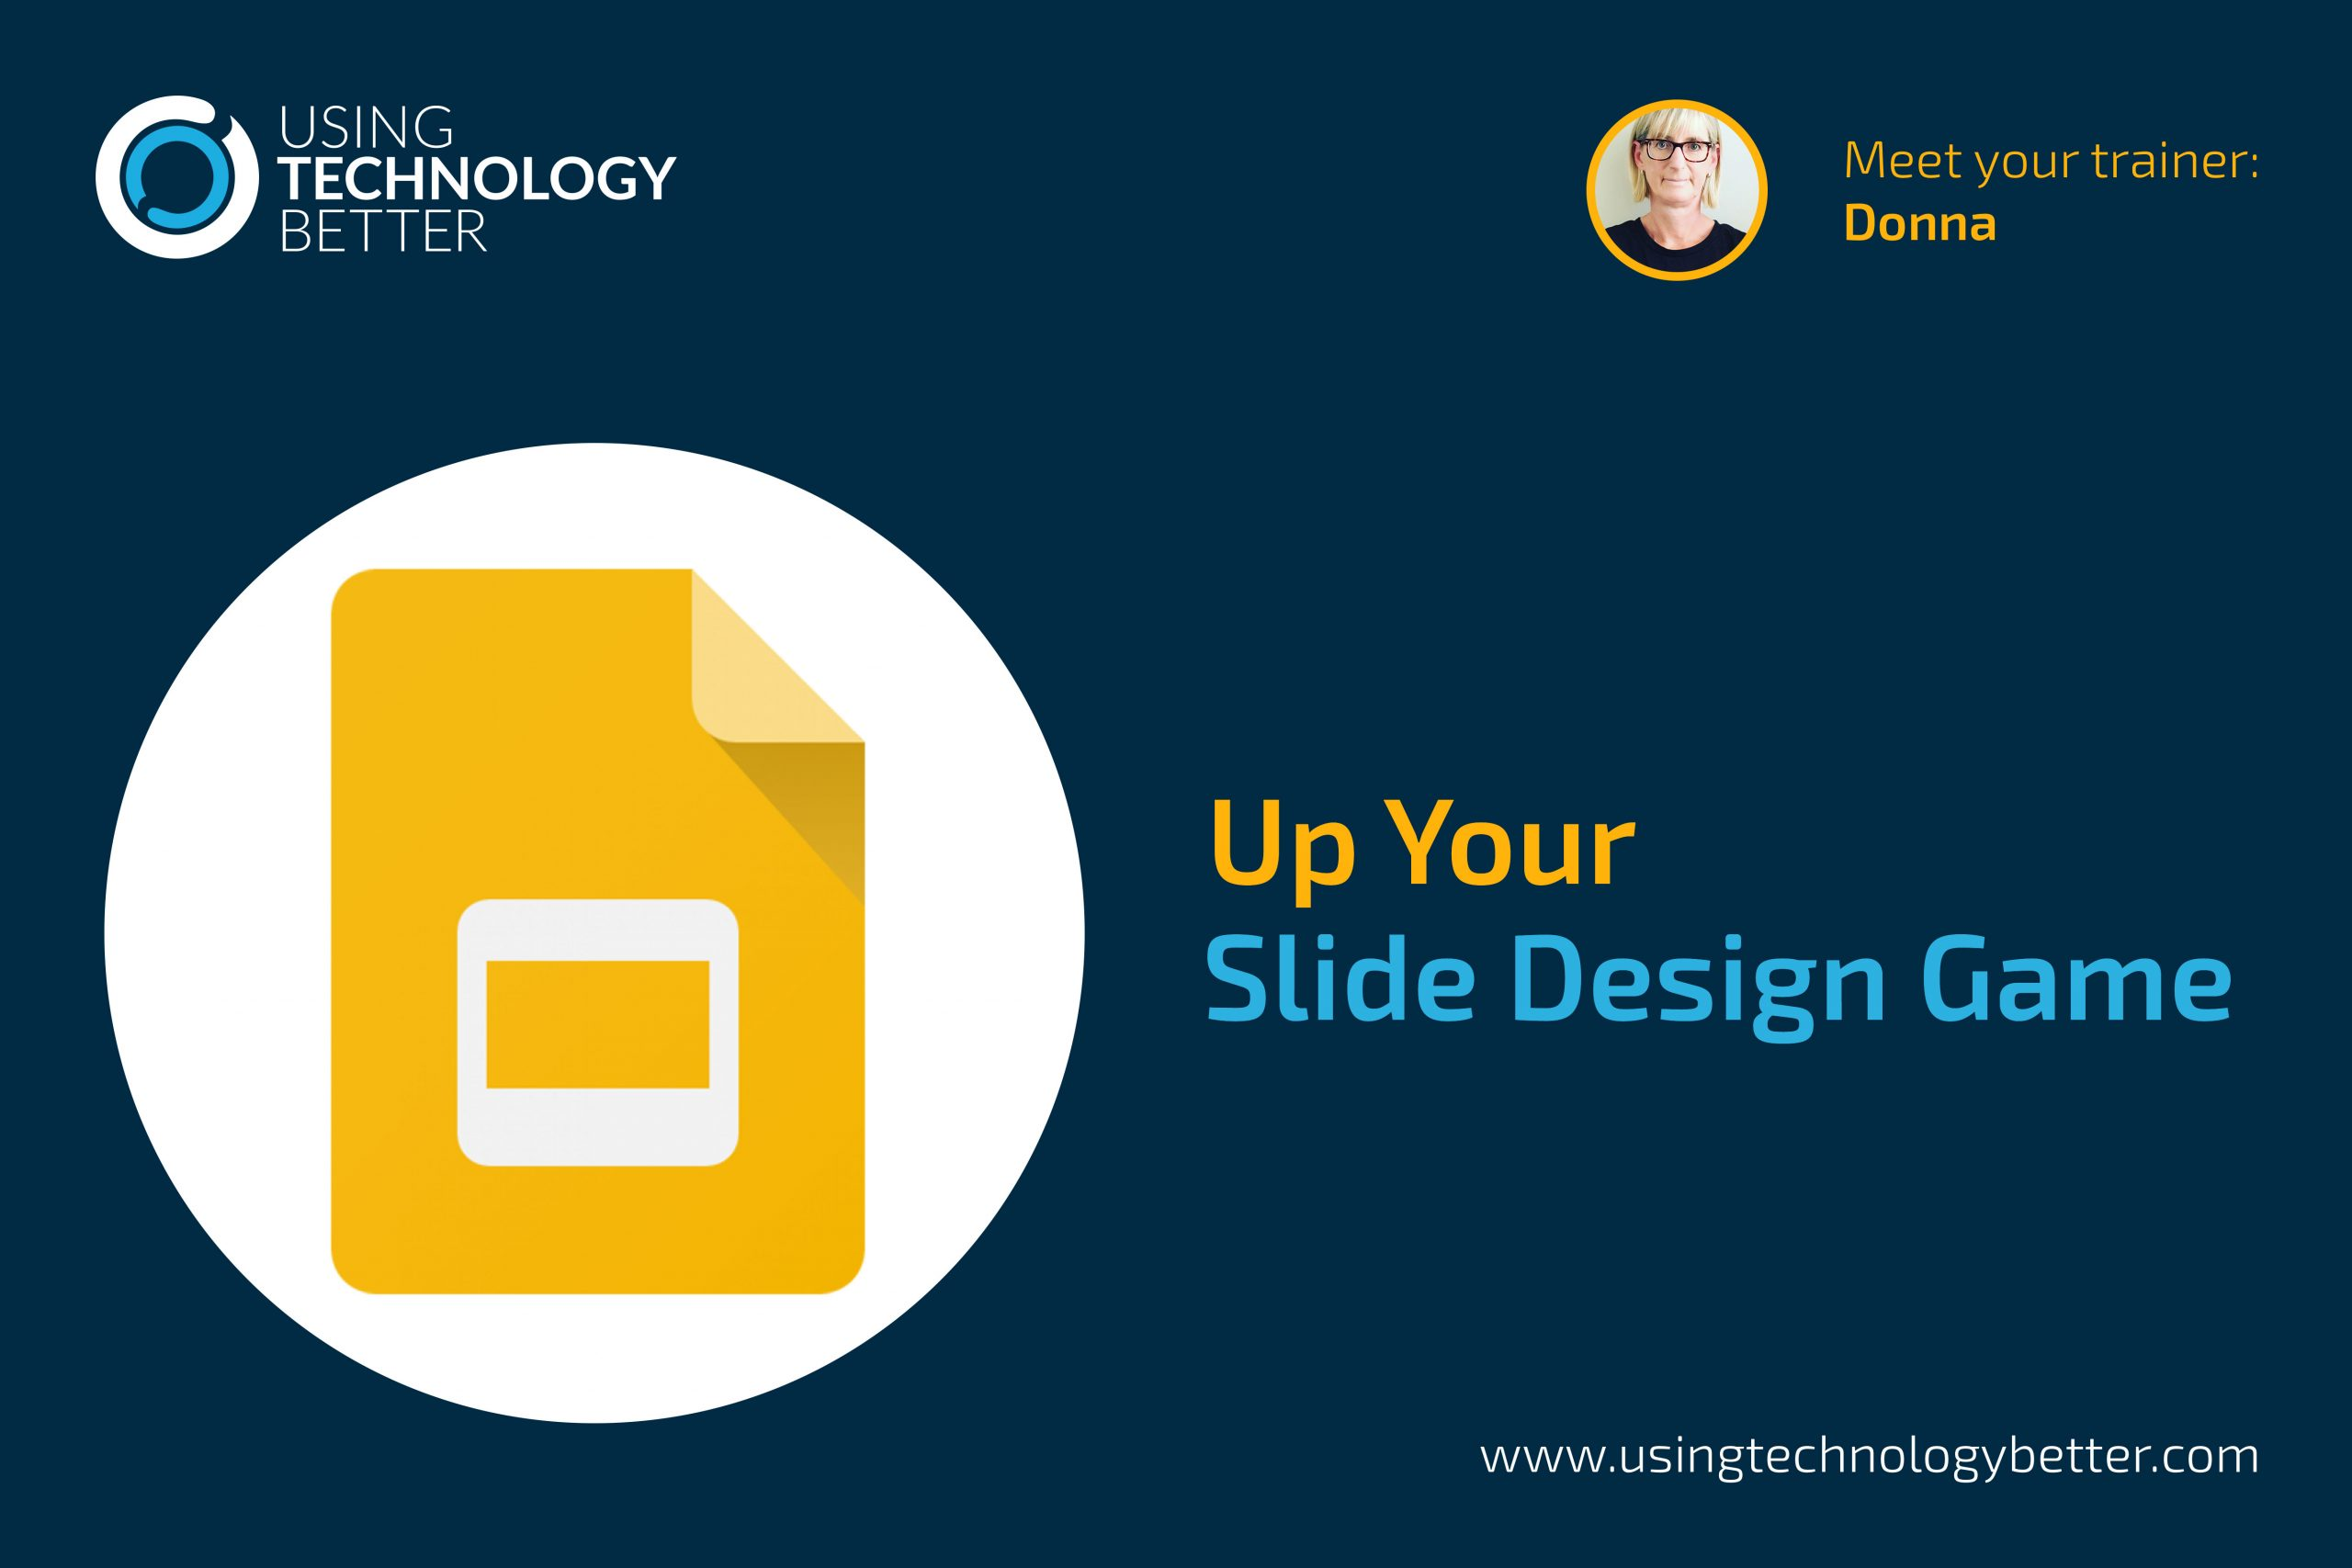 Up your Slide Design Game